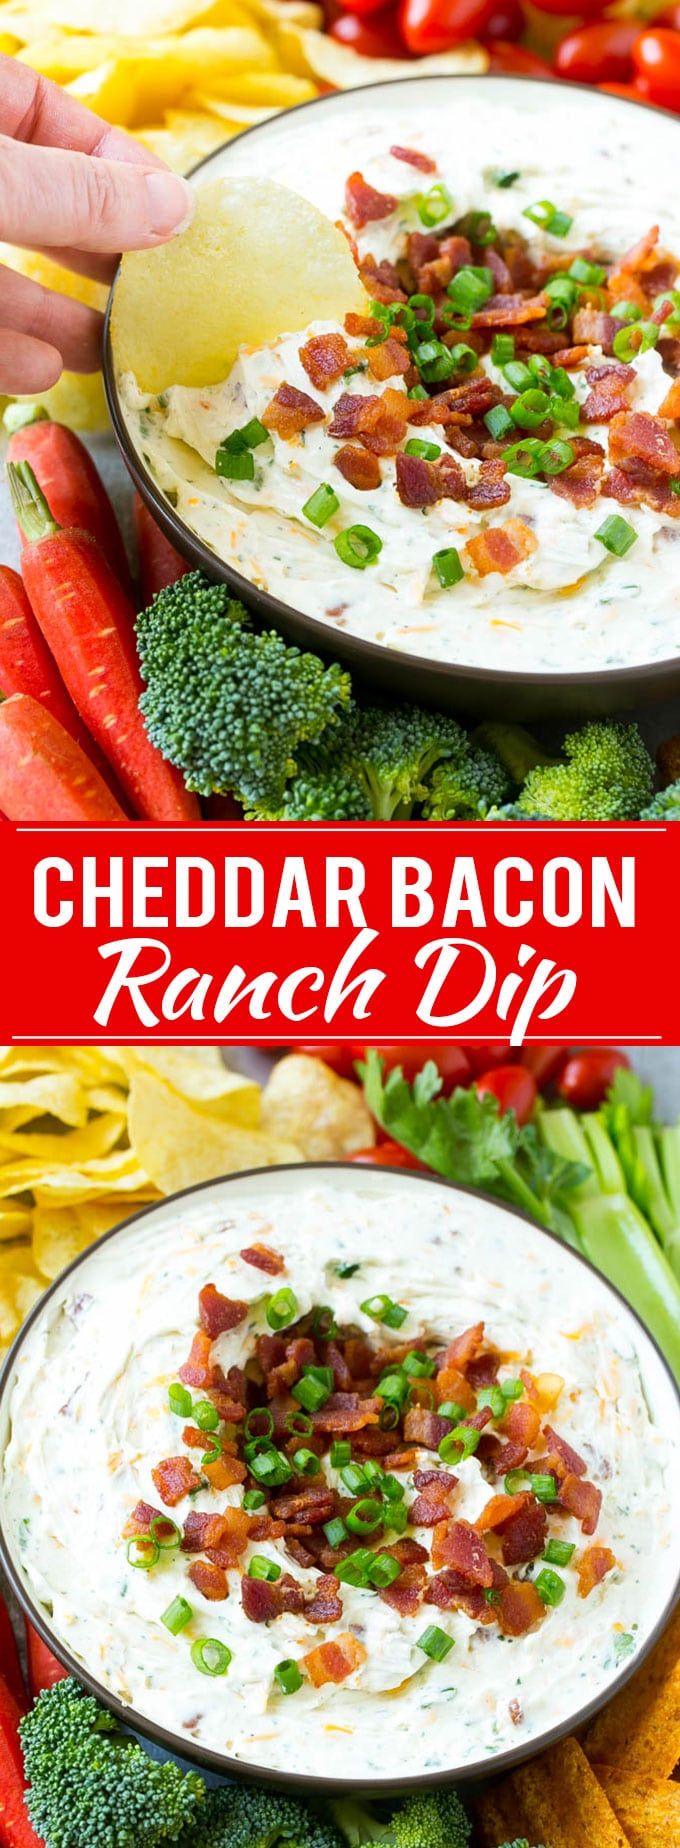 Bacon Ranch Dip Recipe | Homemade Ranch Dip | Easy Dip Recipe | Cheddar Ranch Dip